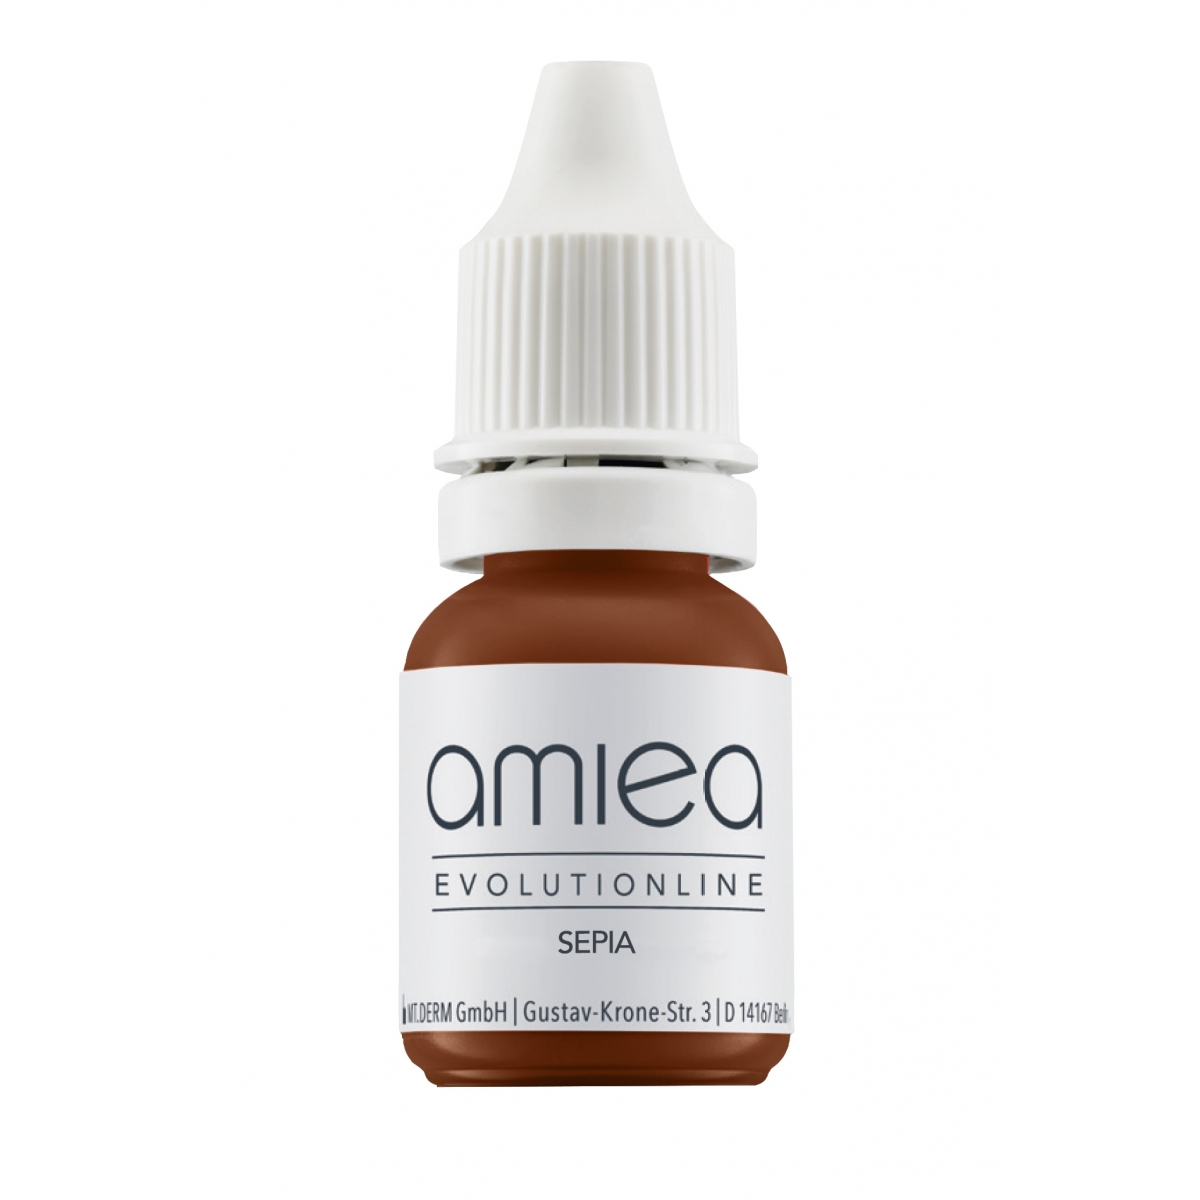 EVOLUTION LINE (10ml) - PIGMENT SEPIA EVOLUTIONLINE AMIEA (10 ml)